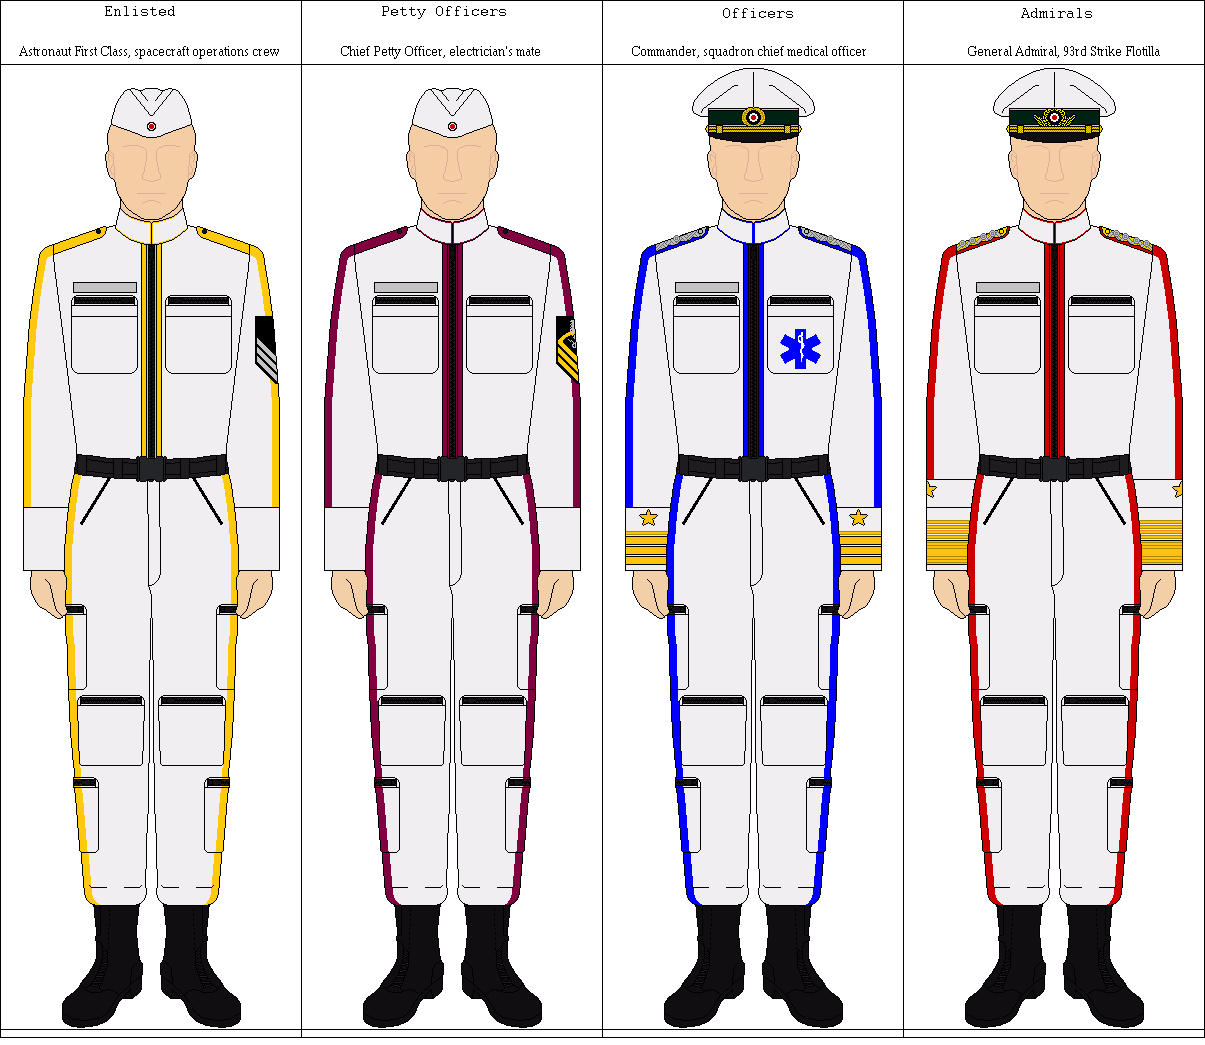 Rank Insignia and Uniforms Thread | Page 84 | Alternate